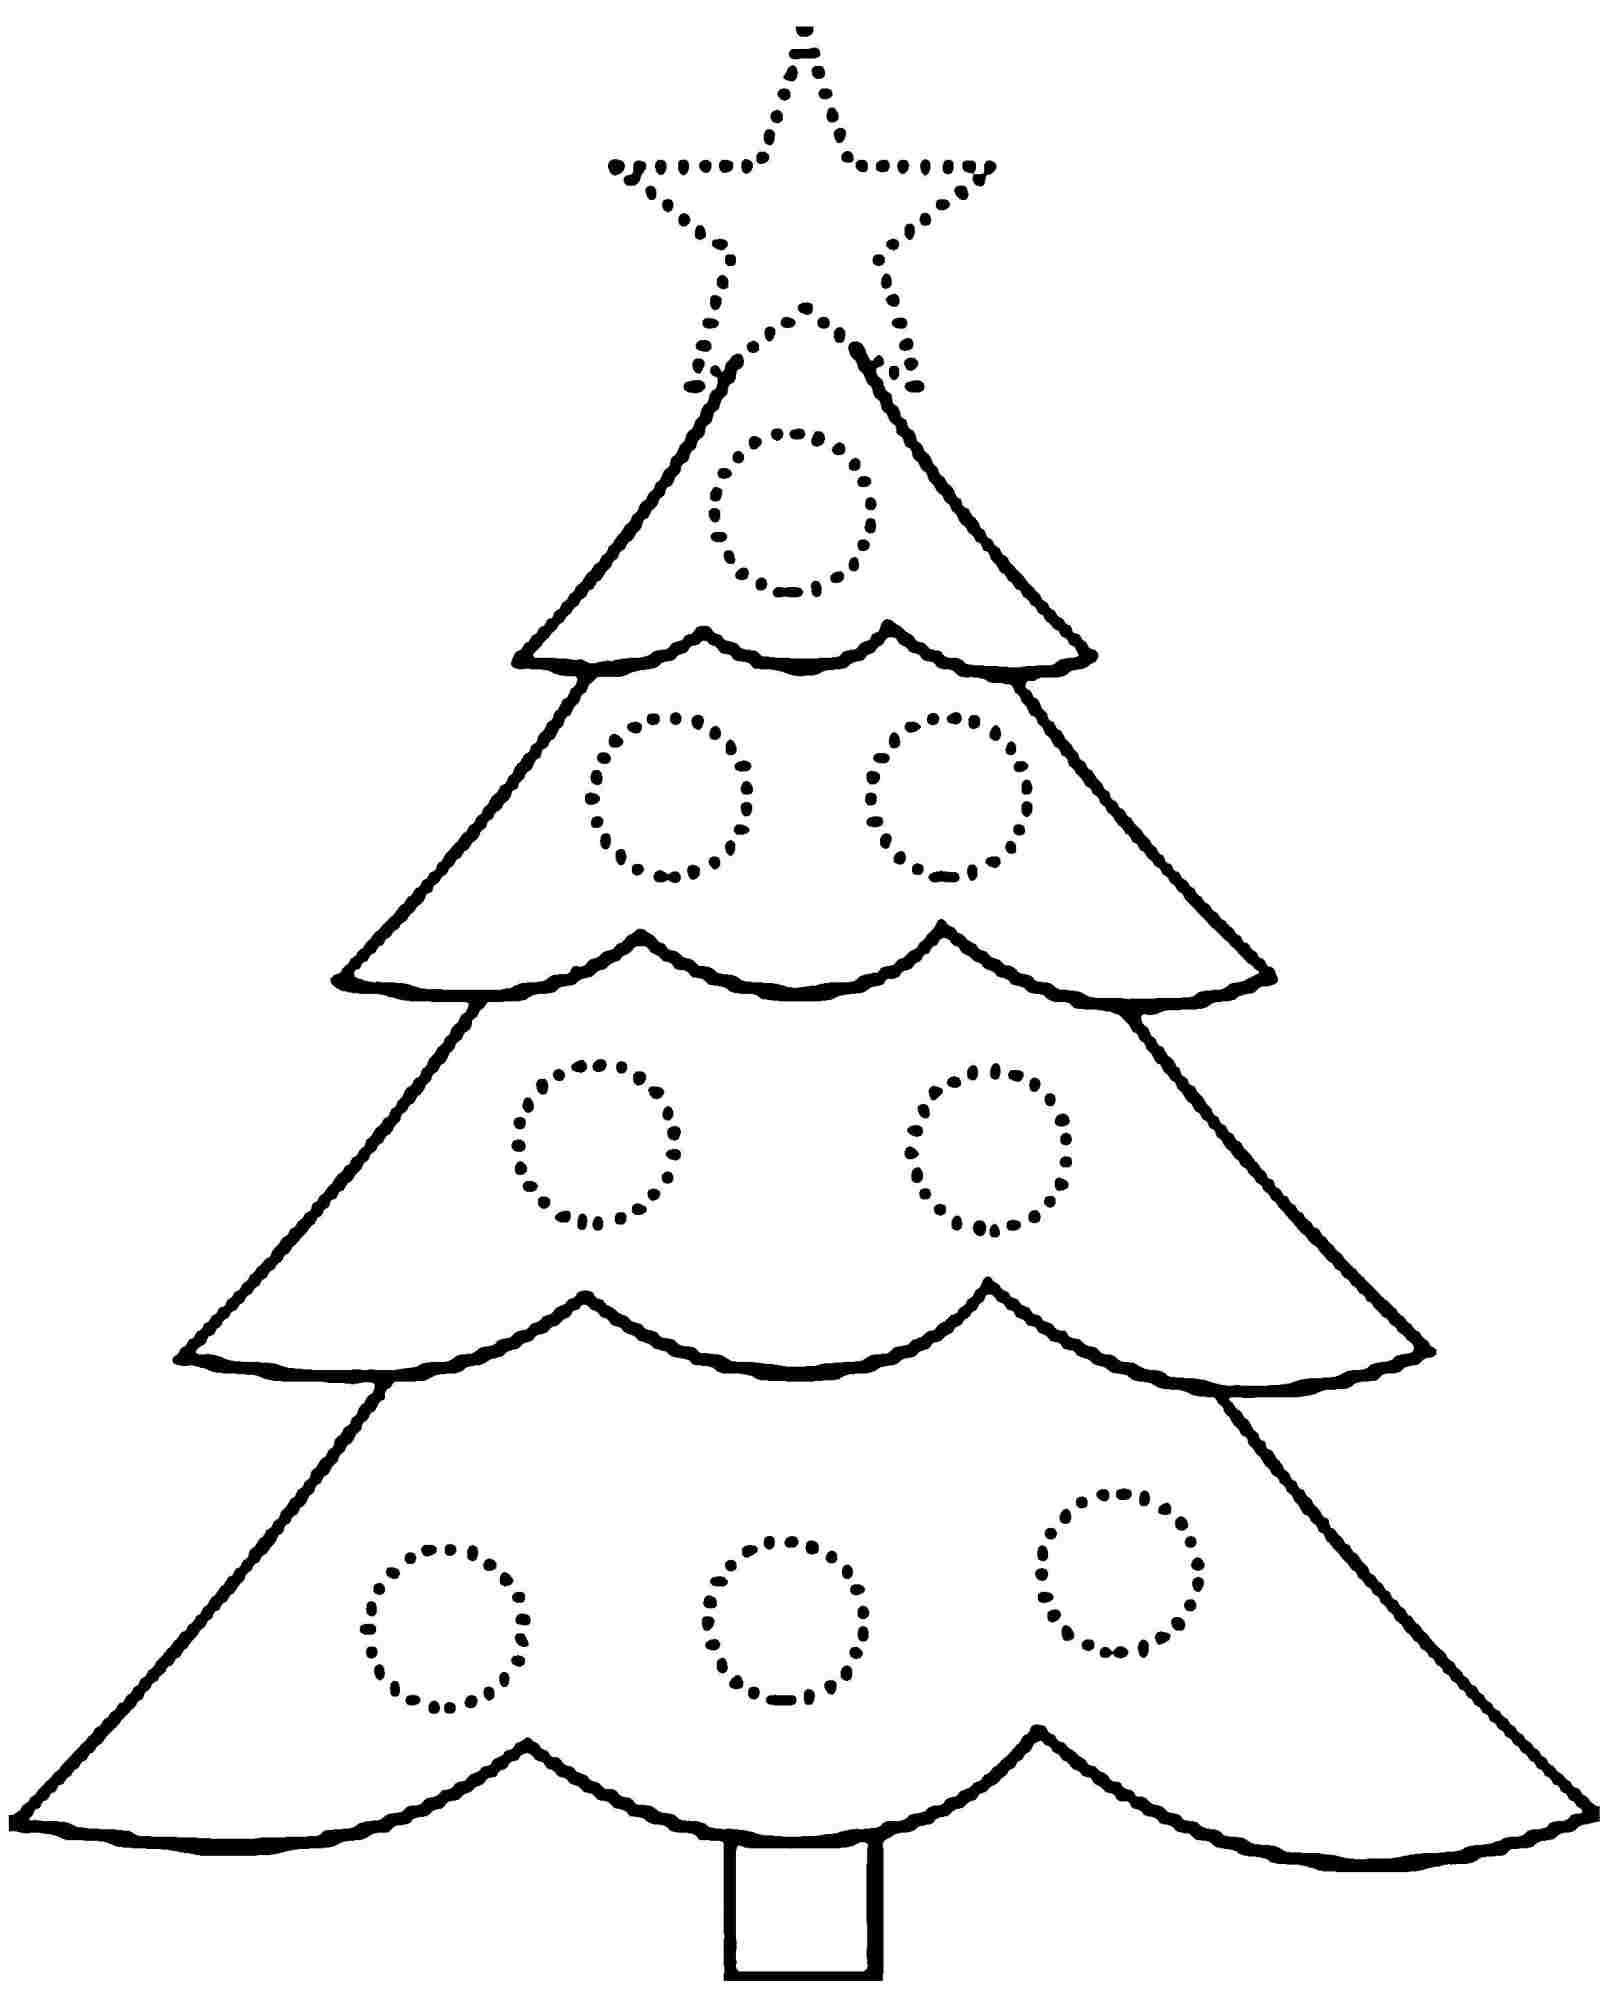 Images For Christmas Tree With Presents Coloring Pages